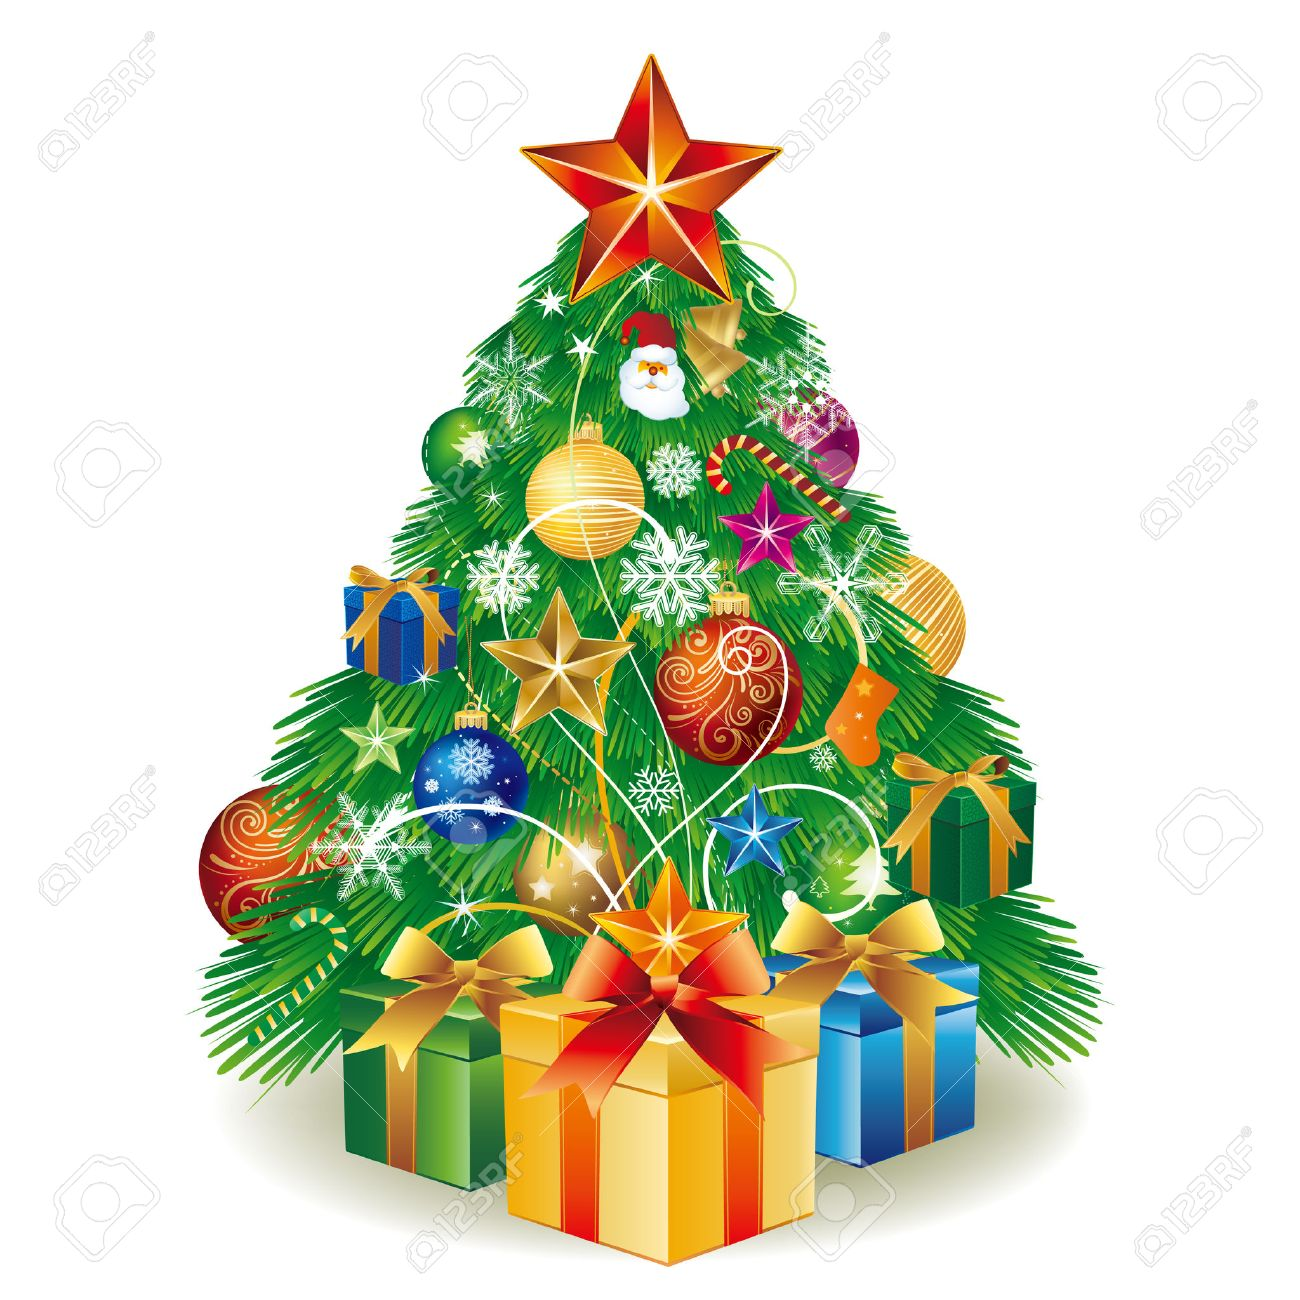 Illustration christmas tree with gift box and balls decoration illustration christmas tree with gift box and balls decoration 8367133 negle Image collections